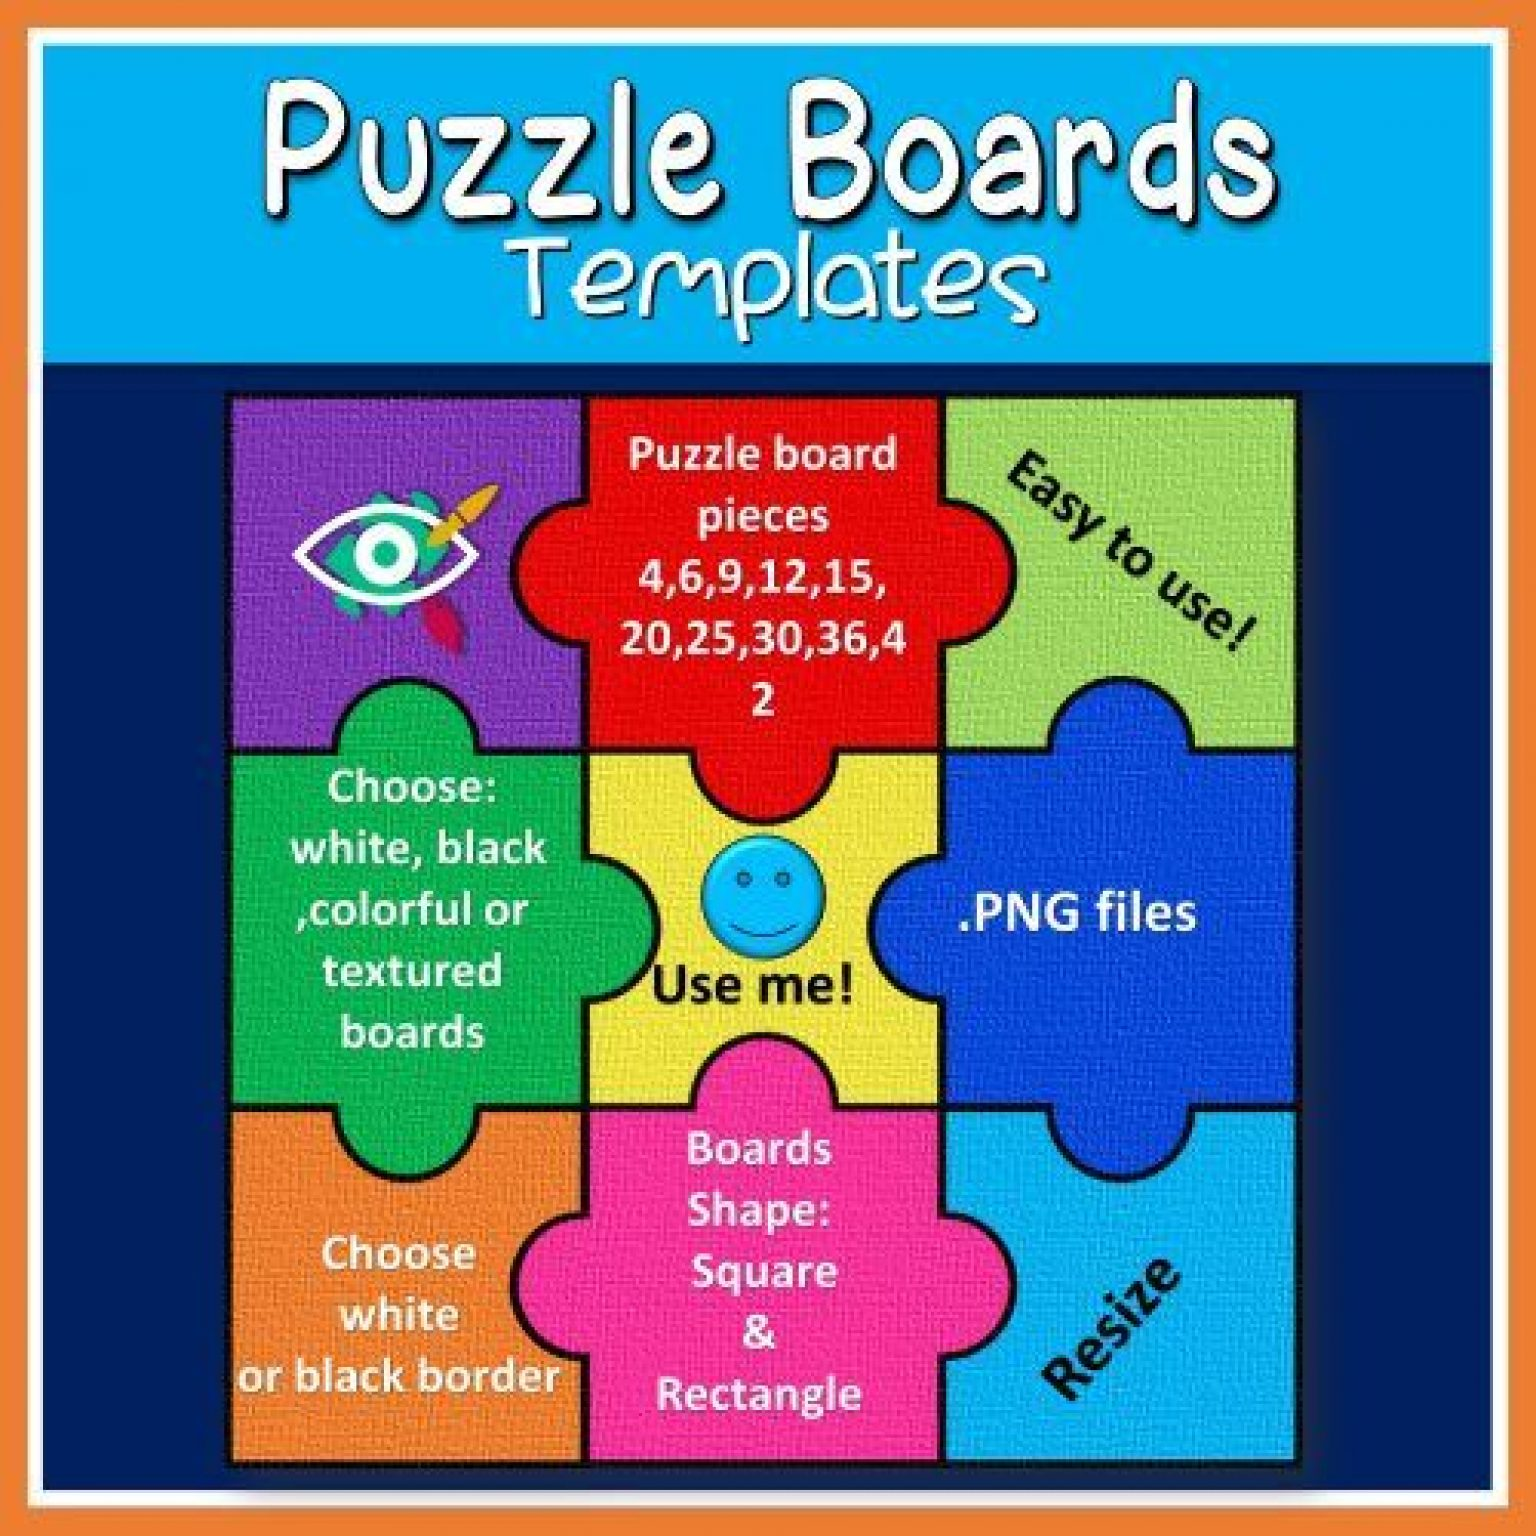 puzzle-boards-templates-title4